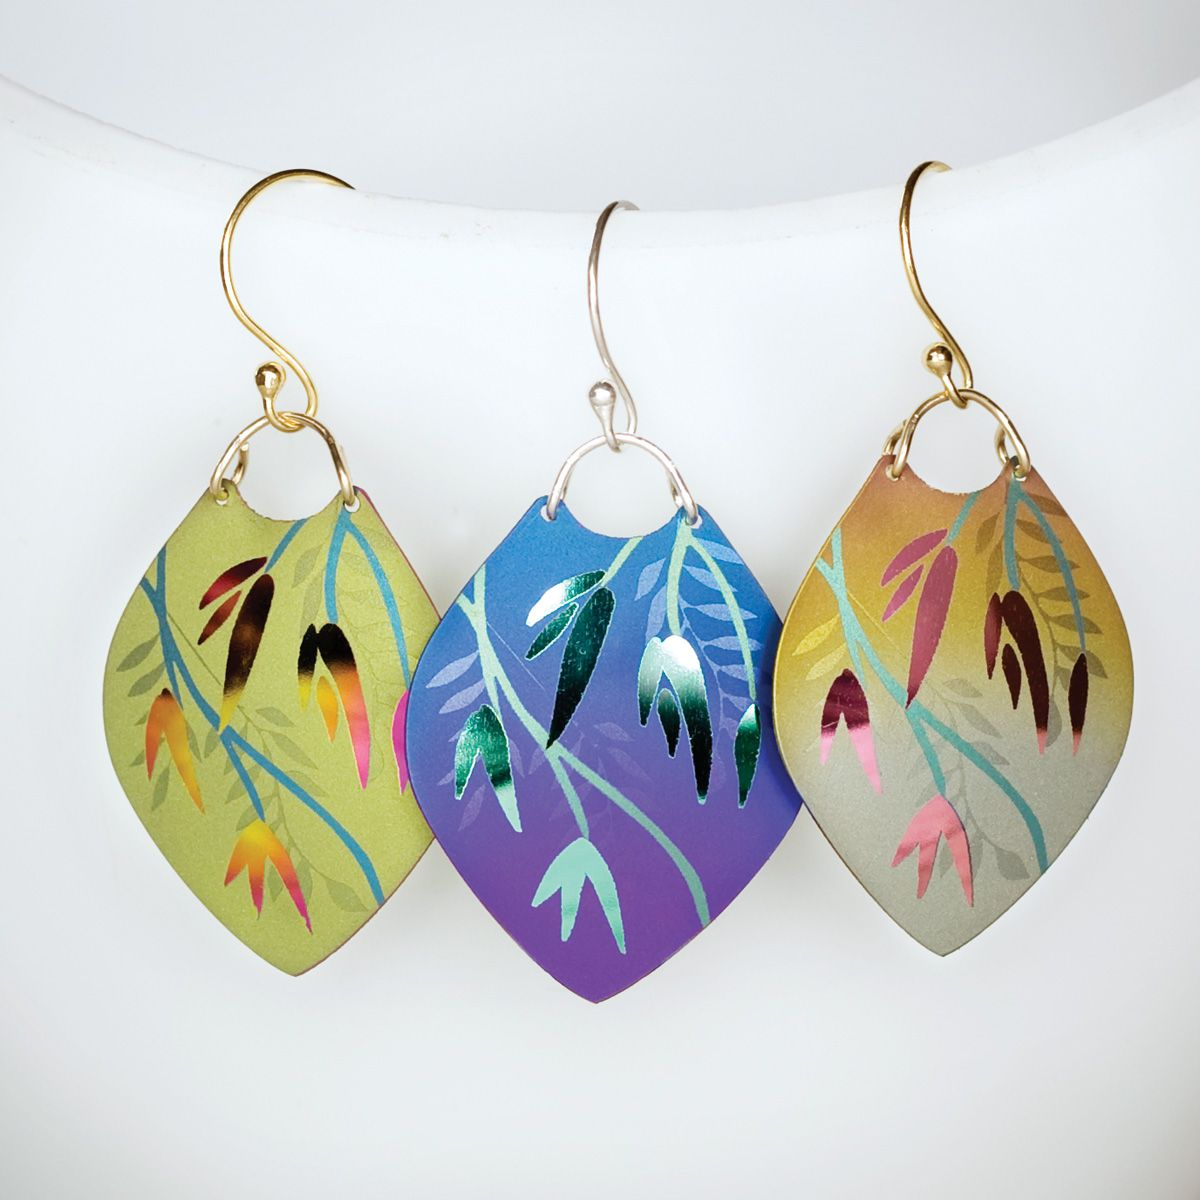 Mystic Summer earrings available from Holly Yashi